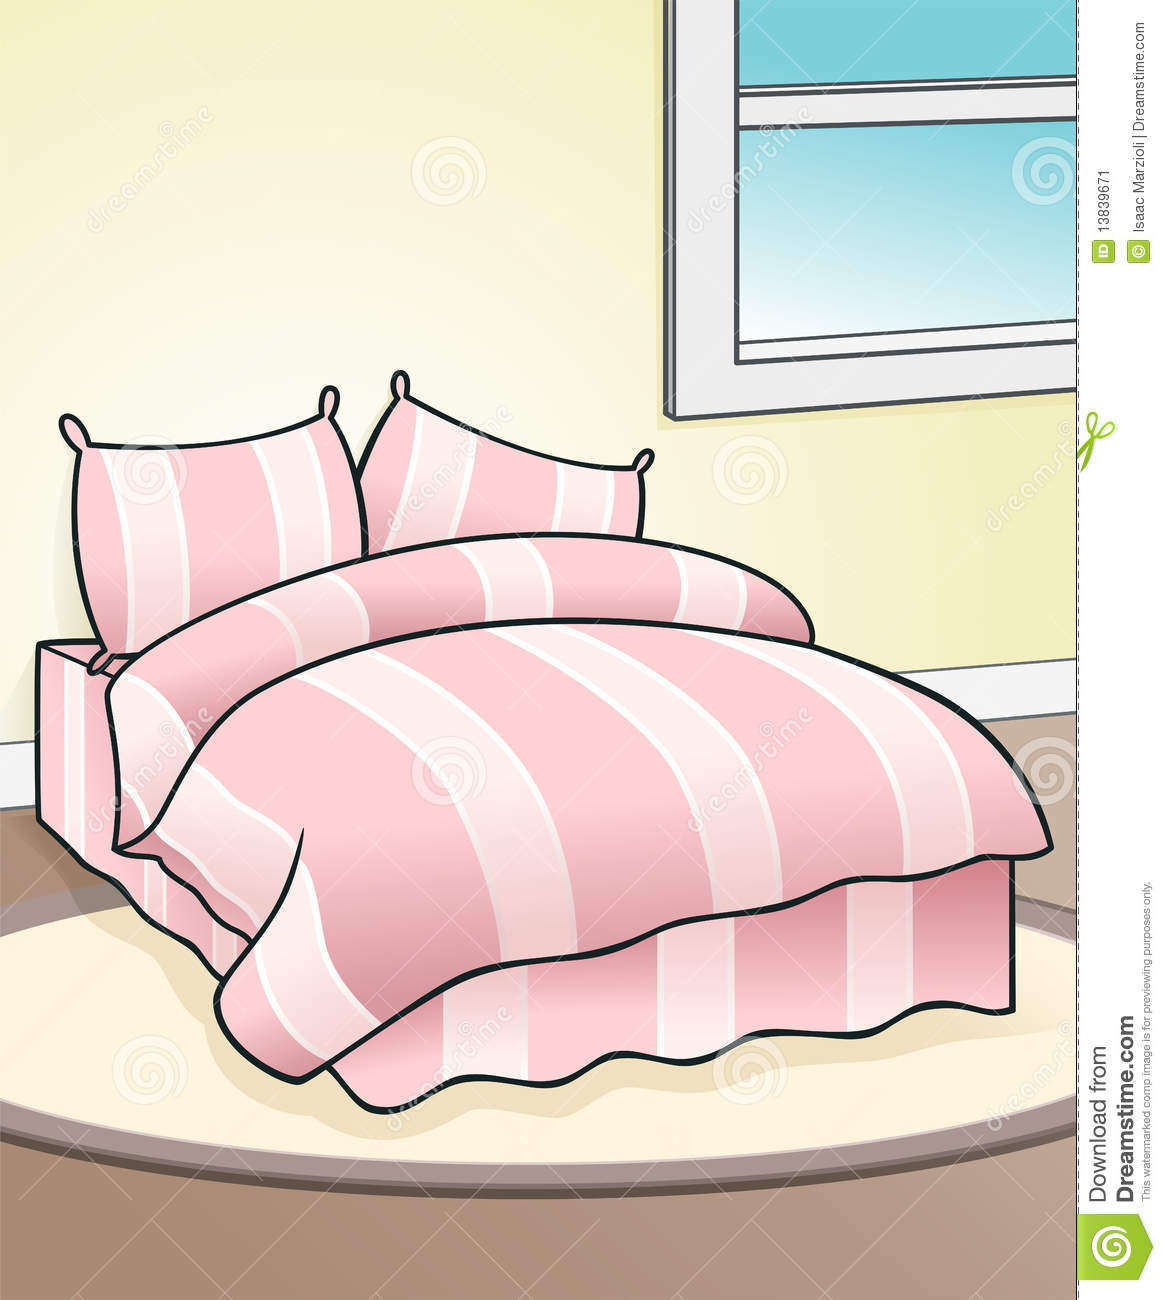 Schlafzimmer Clipart Pink Bed Background Stock Image Image 13839671